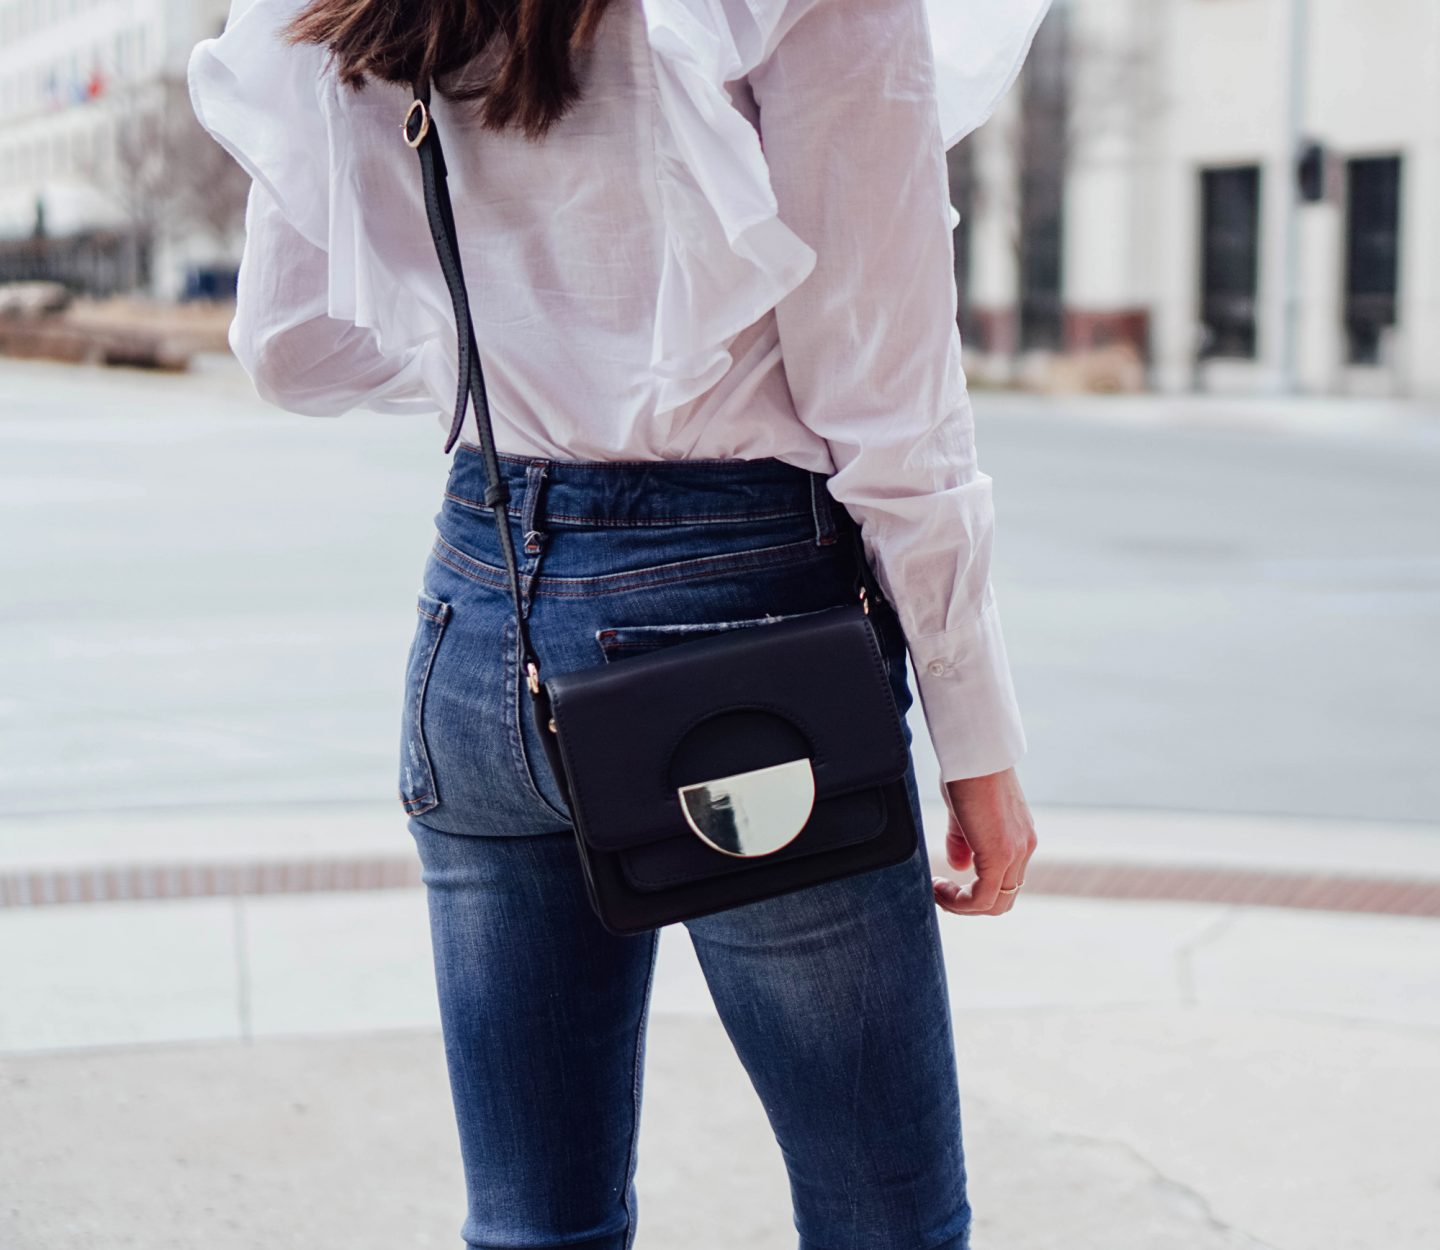 I am partnering with Marks and Spencer on TheDandyLiar.com to update my shoe wardrobe with some fresh new styles, like these gorgeous navy leather cross body bag.